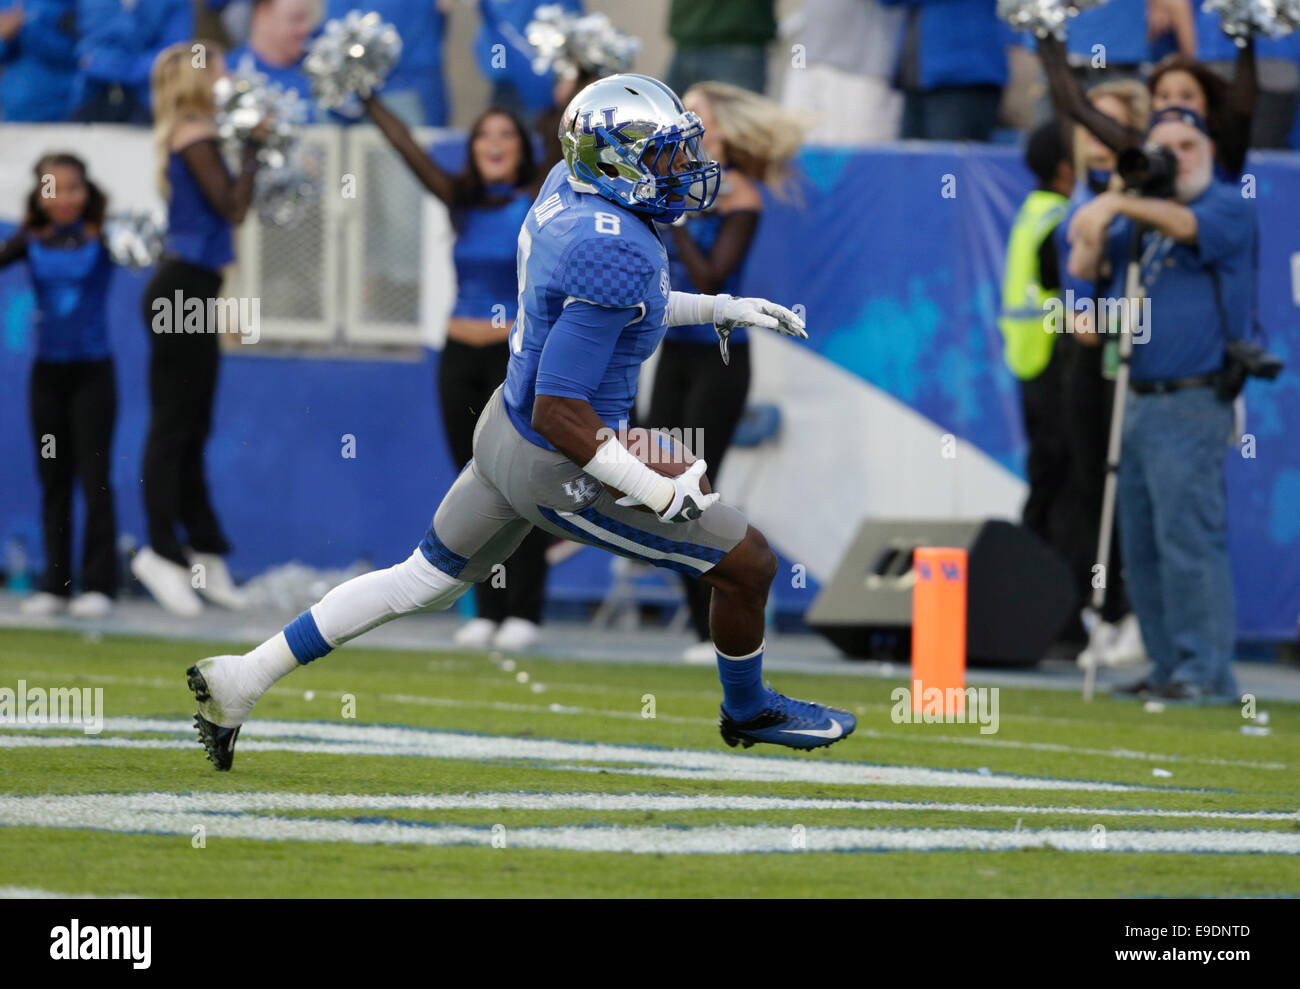 Oct. 25, 2014 - Lexington, Ky, US - Kentucky's Javess Blue (8) scored a touchdown in the third quarter of the Mississippi Stock Photo